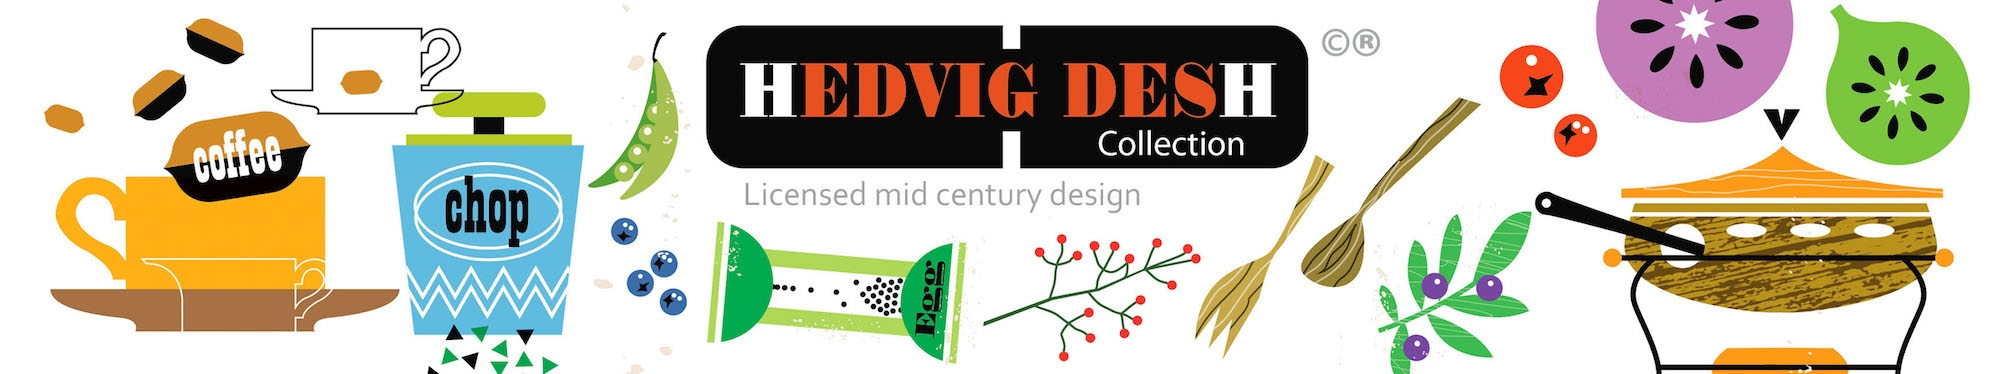 Hedvig Desh Collection (@hedvigdeshcollection) Cover Image